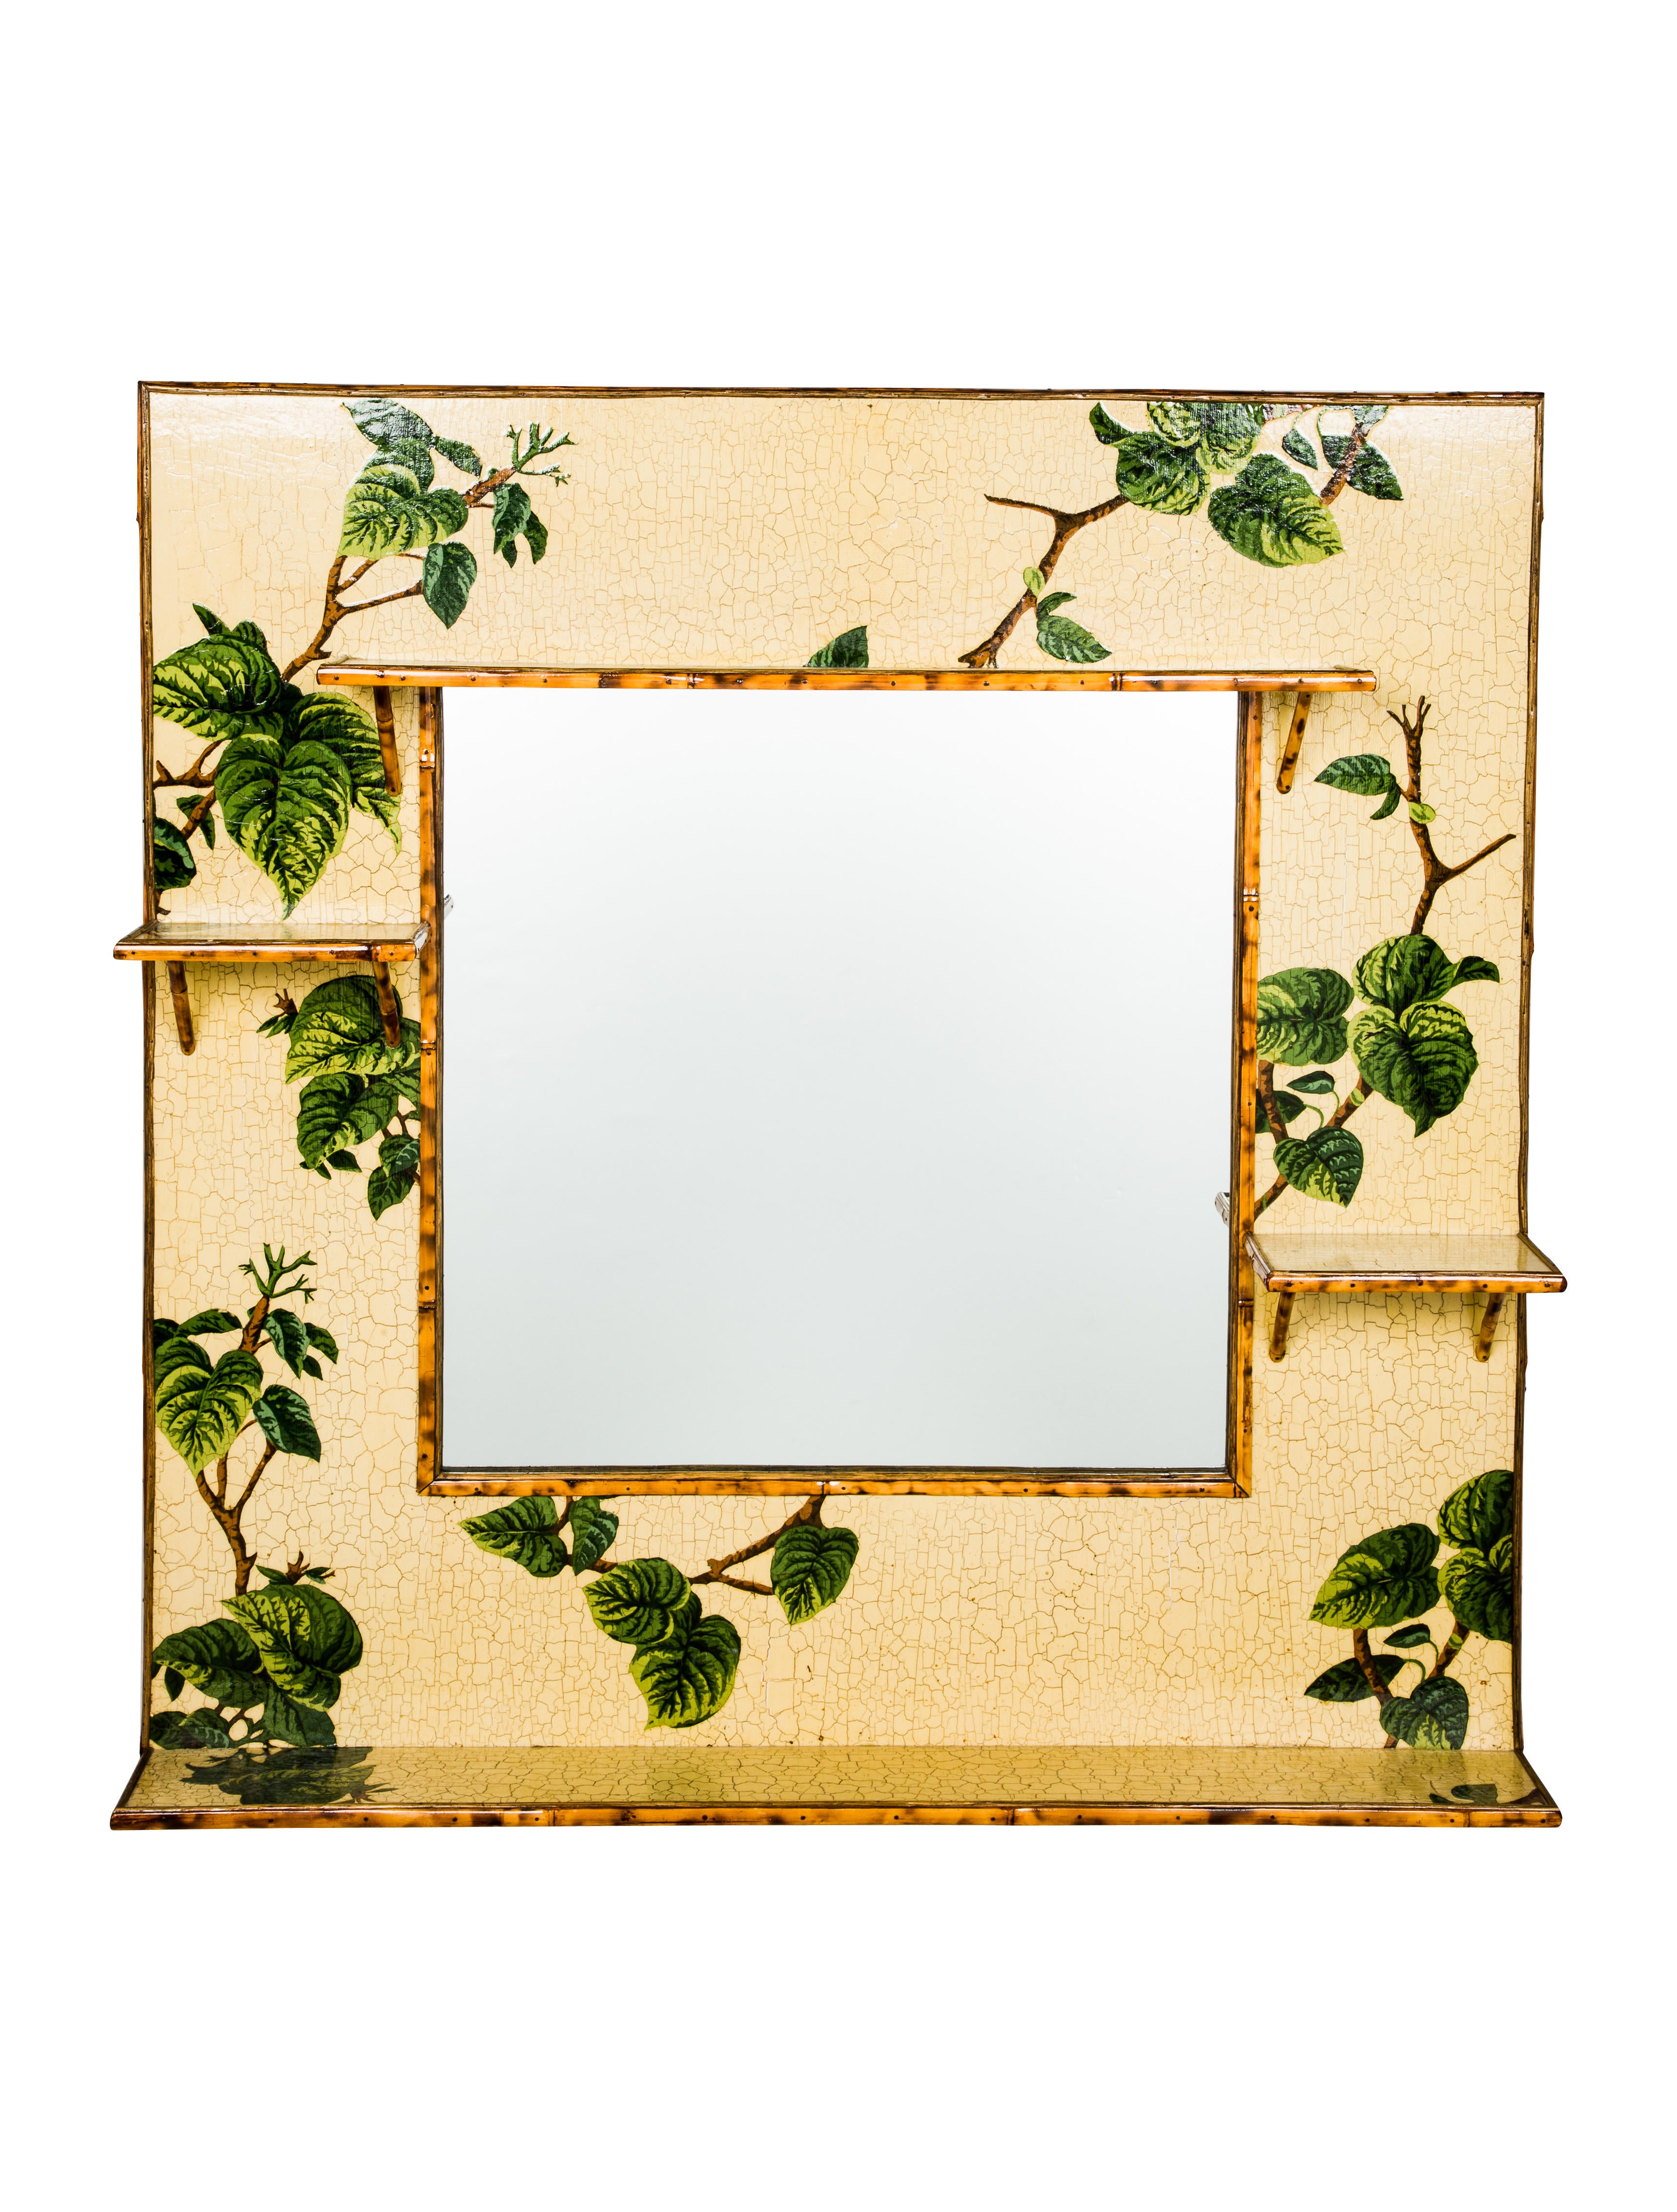 Bamboo Decorative Wall Mirror - Decor And Accessories - MIR20258 ...